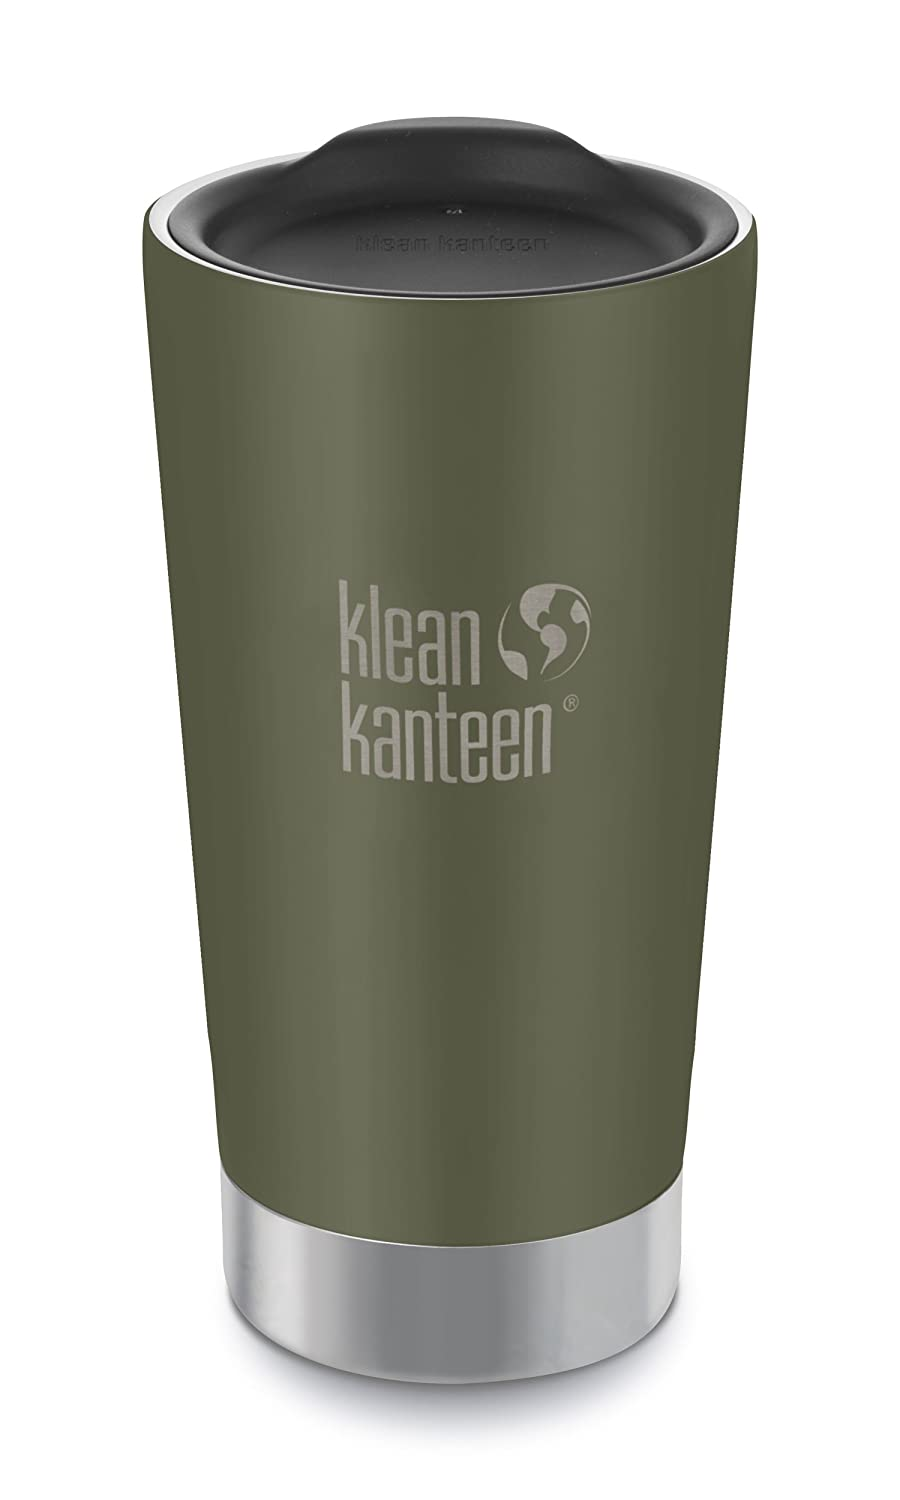 Klean Kanteen Double Wall Vacuum Insulated Stainless Steel Tumbler Cup with Tumbler Lid K16VSSC-BS-P